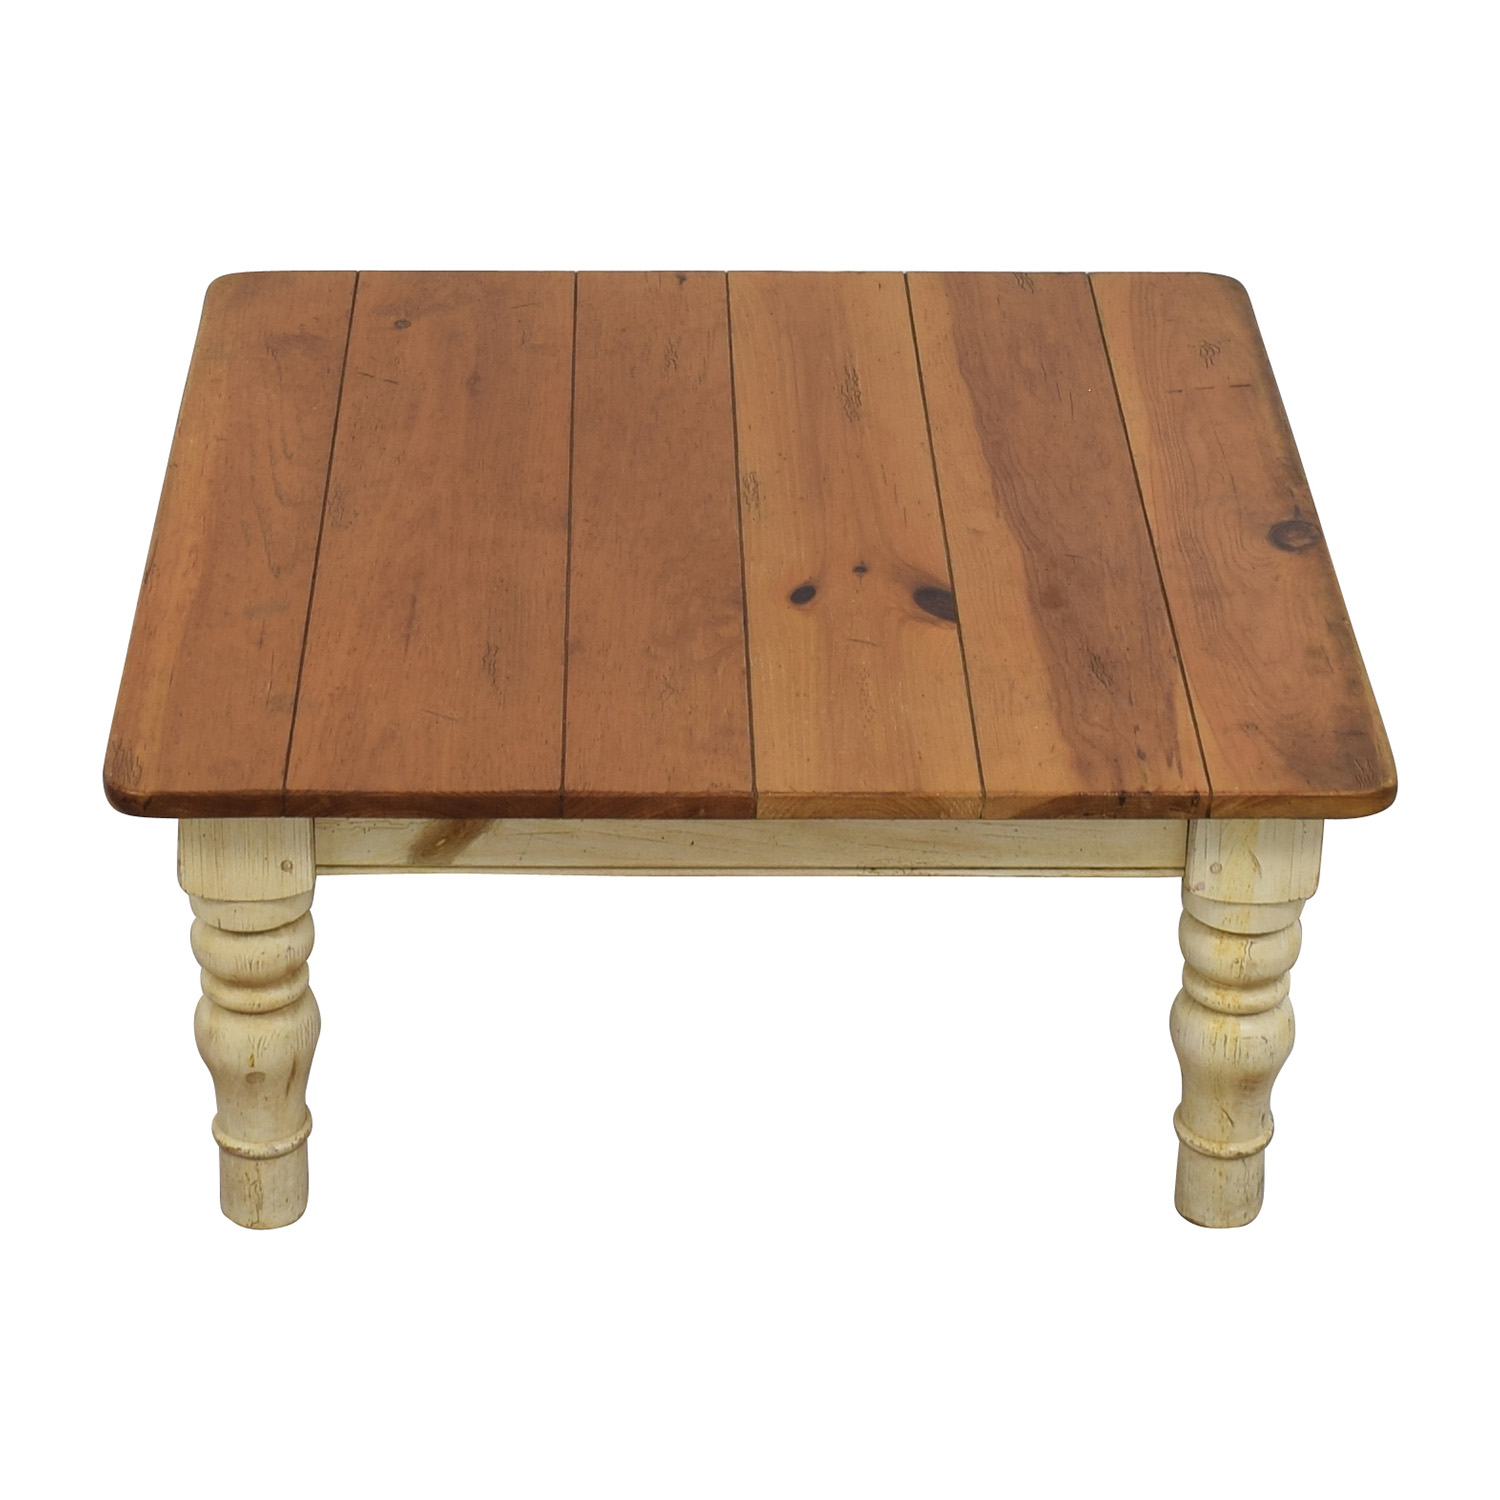 Used Ethan Allen Coffee Tables: Ethan Allen Ethan Allen Farmhouse Cherry Wood